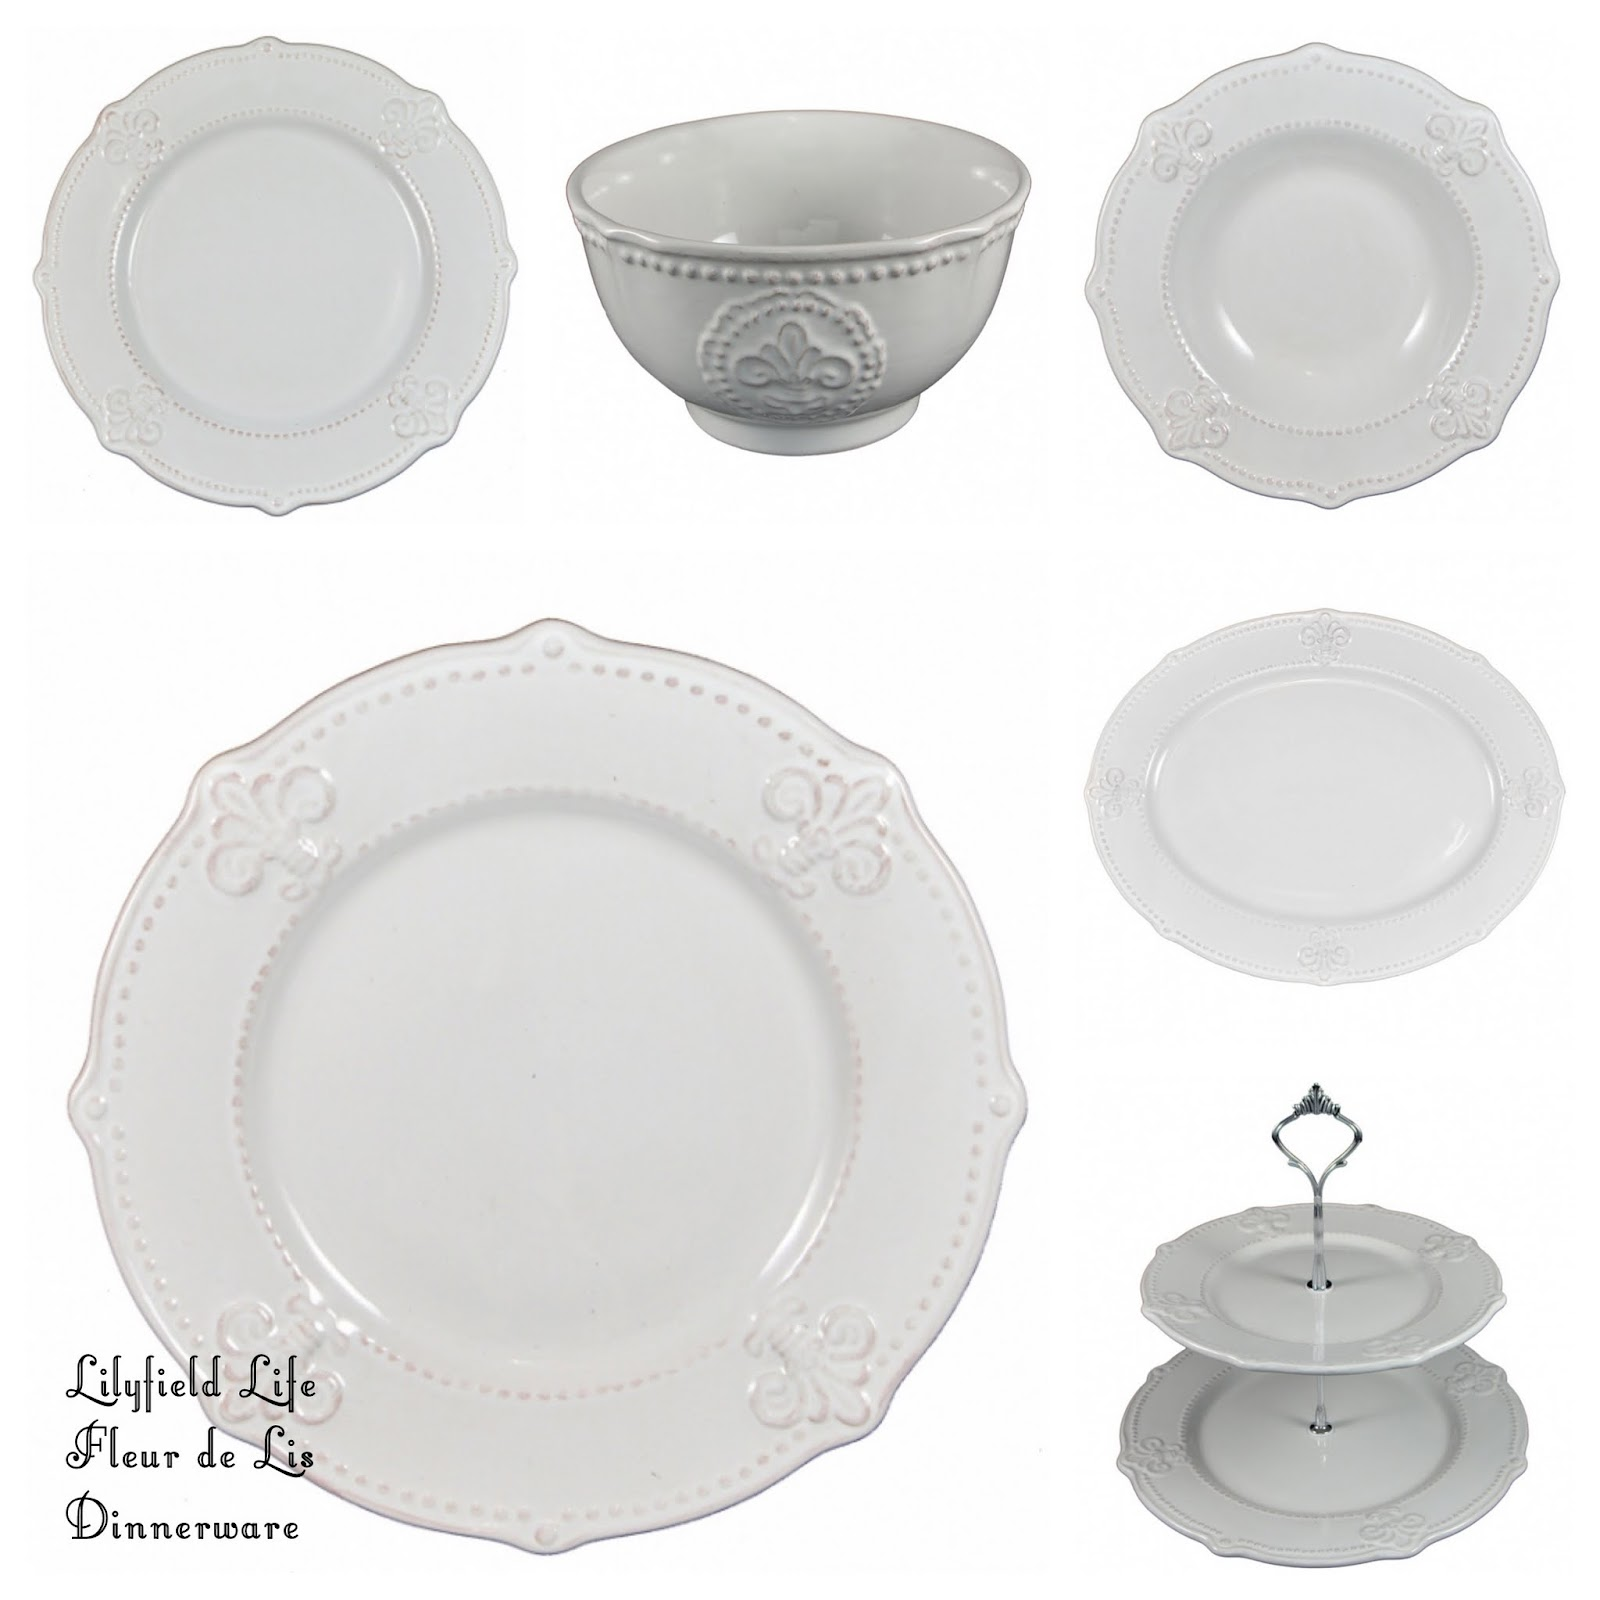 I Have An Initial Small Order Here 4 Cake Stands 3 Oval Platters And 6 Each Of The Dinner Set No Mugs On Hand But Thought Would Gather Everyone S